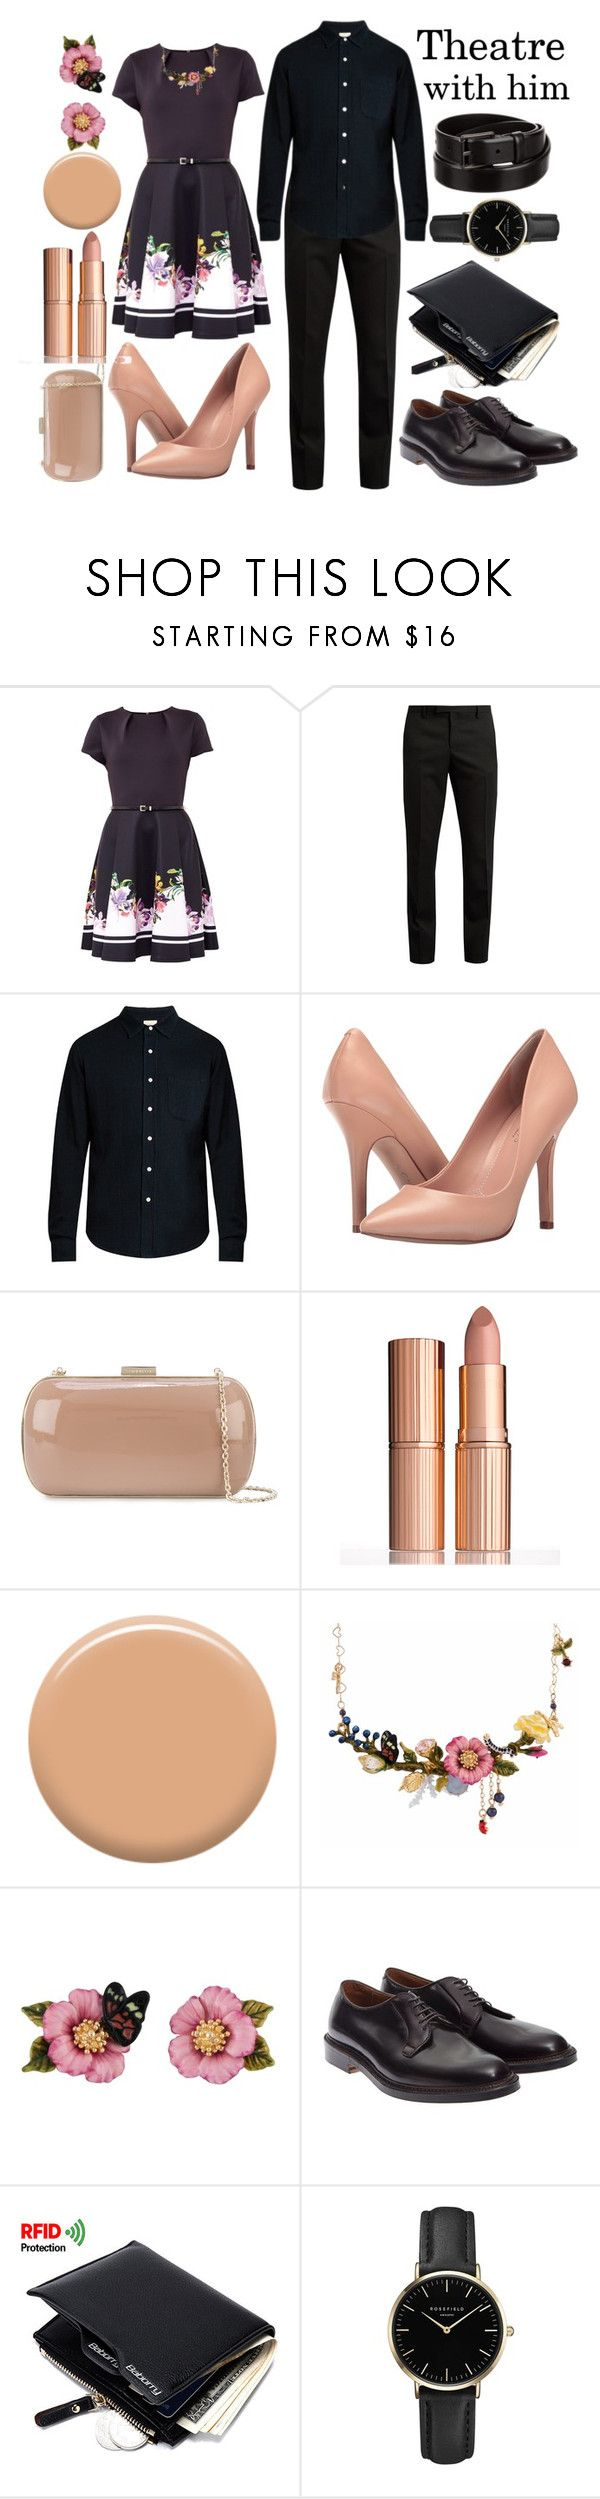 """Theatre"" by kacenka-1 ❤ liked on Polyvore featuring Ted Baker, Yves Saint Laurent, Simon Miller, Charles by Charles David, Sergio Rossi, Charlotte Tilbury, Lauren B. Beauty, Les Néréides, Alden and ROSEFIELD"